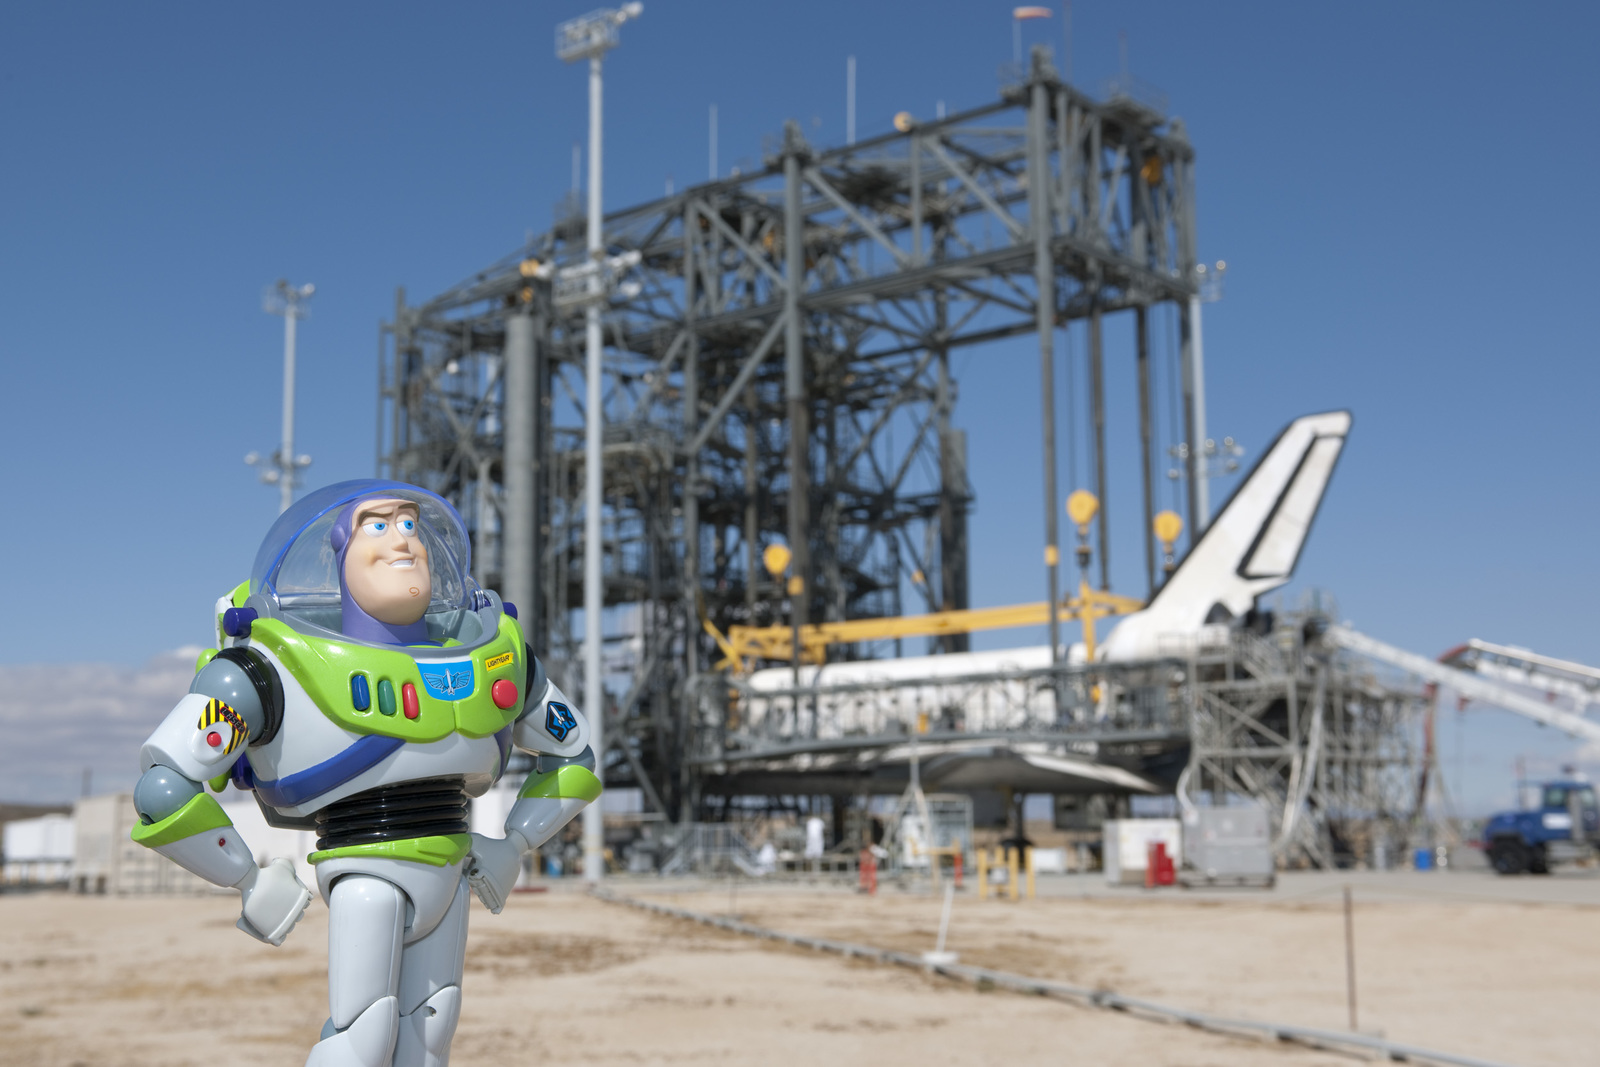 Discovery's STS-128 mission returns after a mission to the International Space Station. A Disney figure of Buzz Lightyear, space ranger that accompanied the mission after spending 15 months aboard the Station, is shown standing in front of the Shuttle. While on the station, Buzz supported NASA's education outreach program – STEM (Science, Technology, Engineering and Mathematics) by creating a series of fun educational online outreach programs